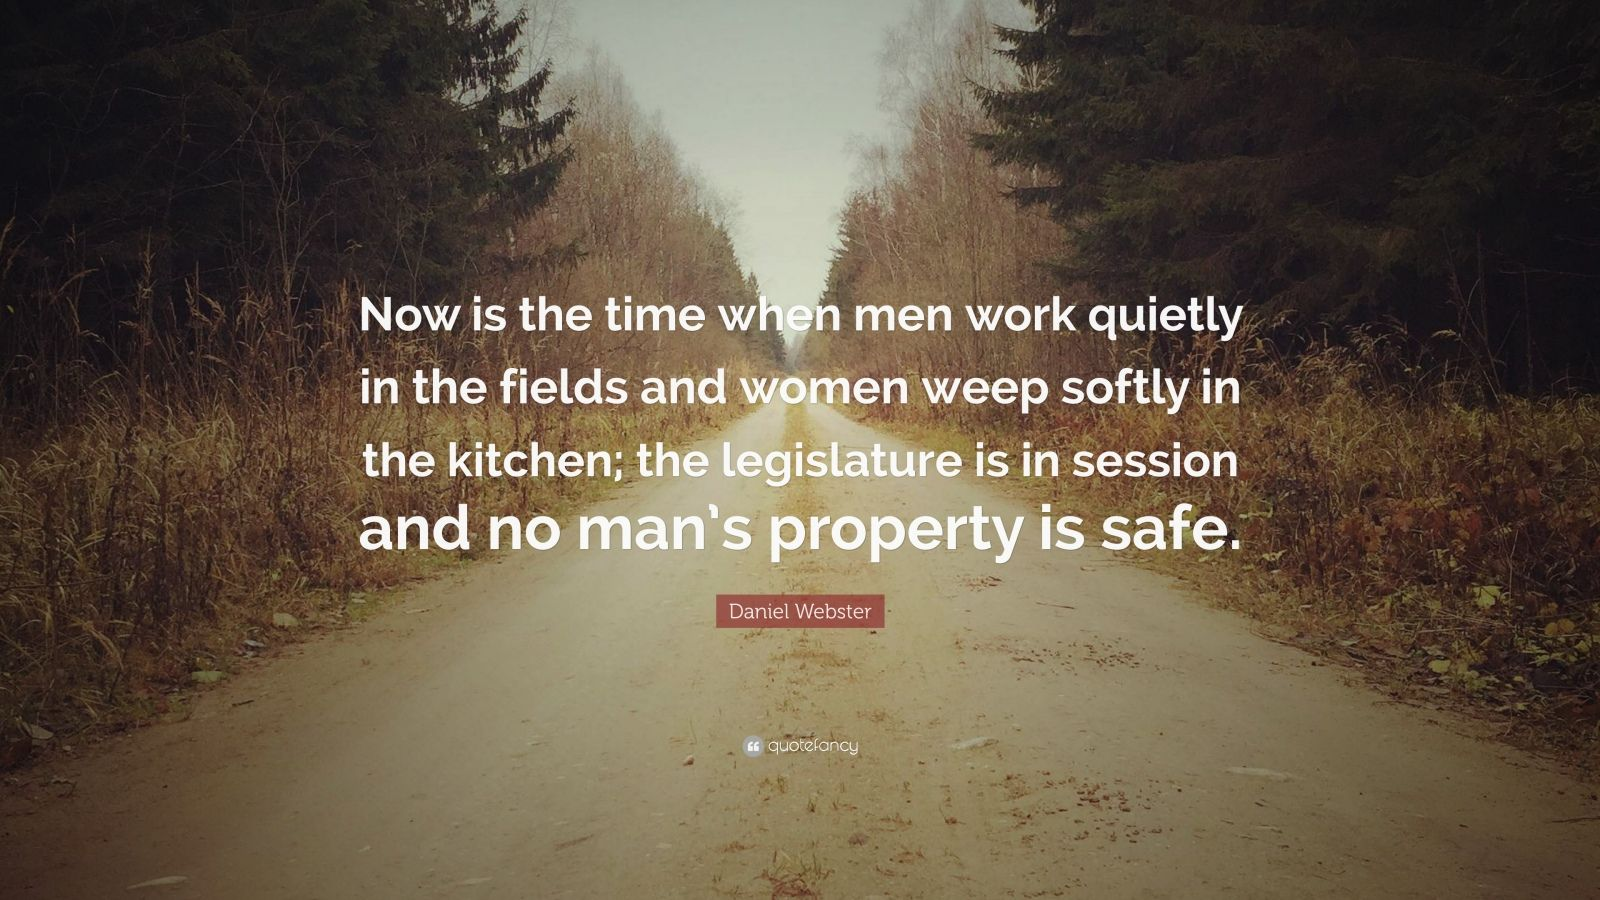 """Daniel Webster Quote: """"Now is the time when men work quietly in the fields and women weep softly in the kitchen; the legislature is in session and no man's property is safe."""""""